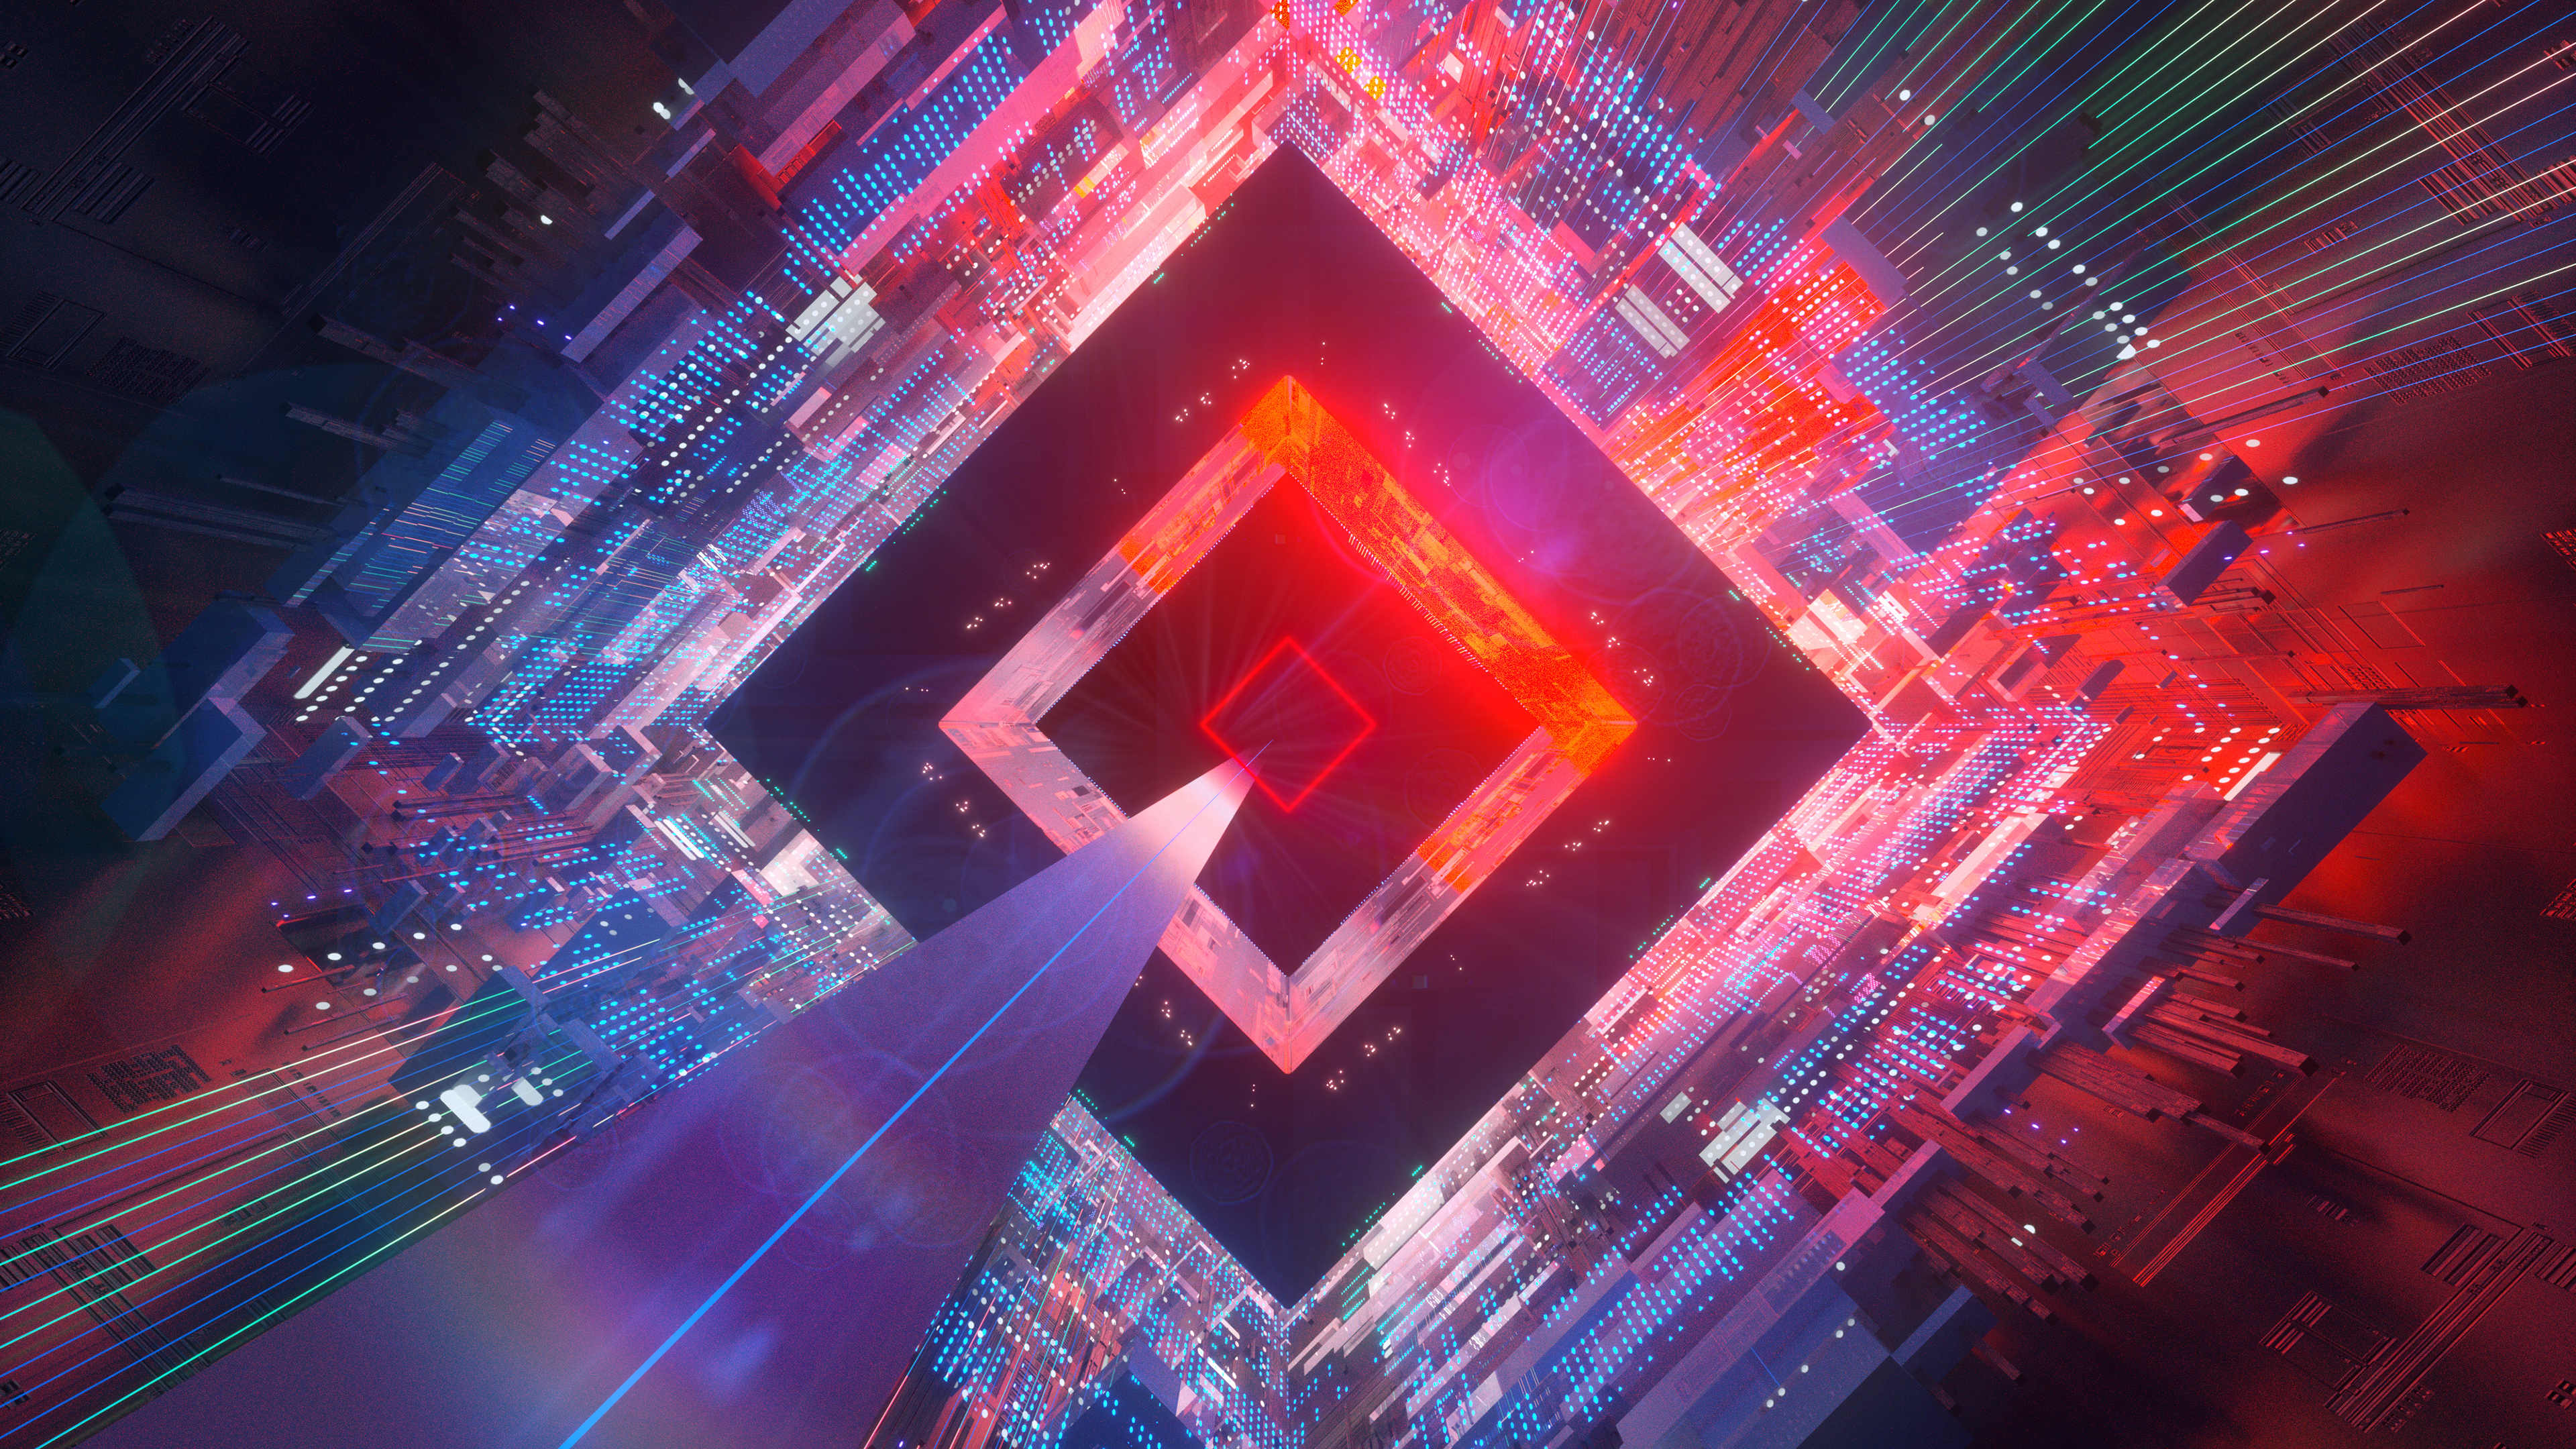 Motion Graphics Illustration 4k Hd Abstract 4k Wallpapers